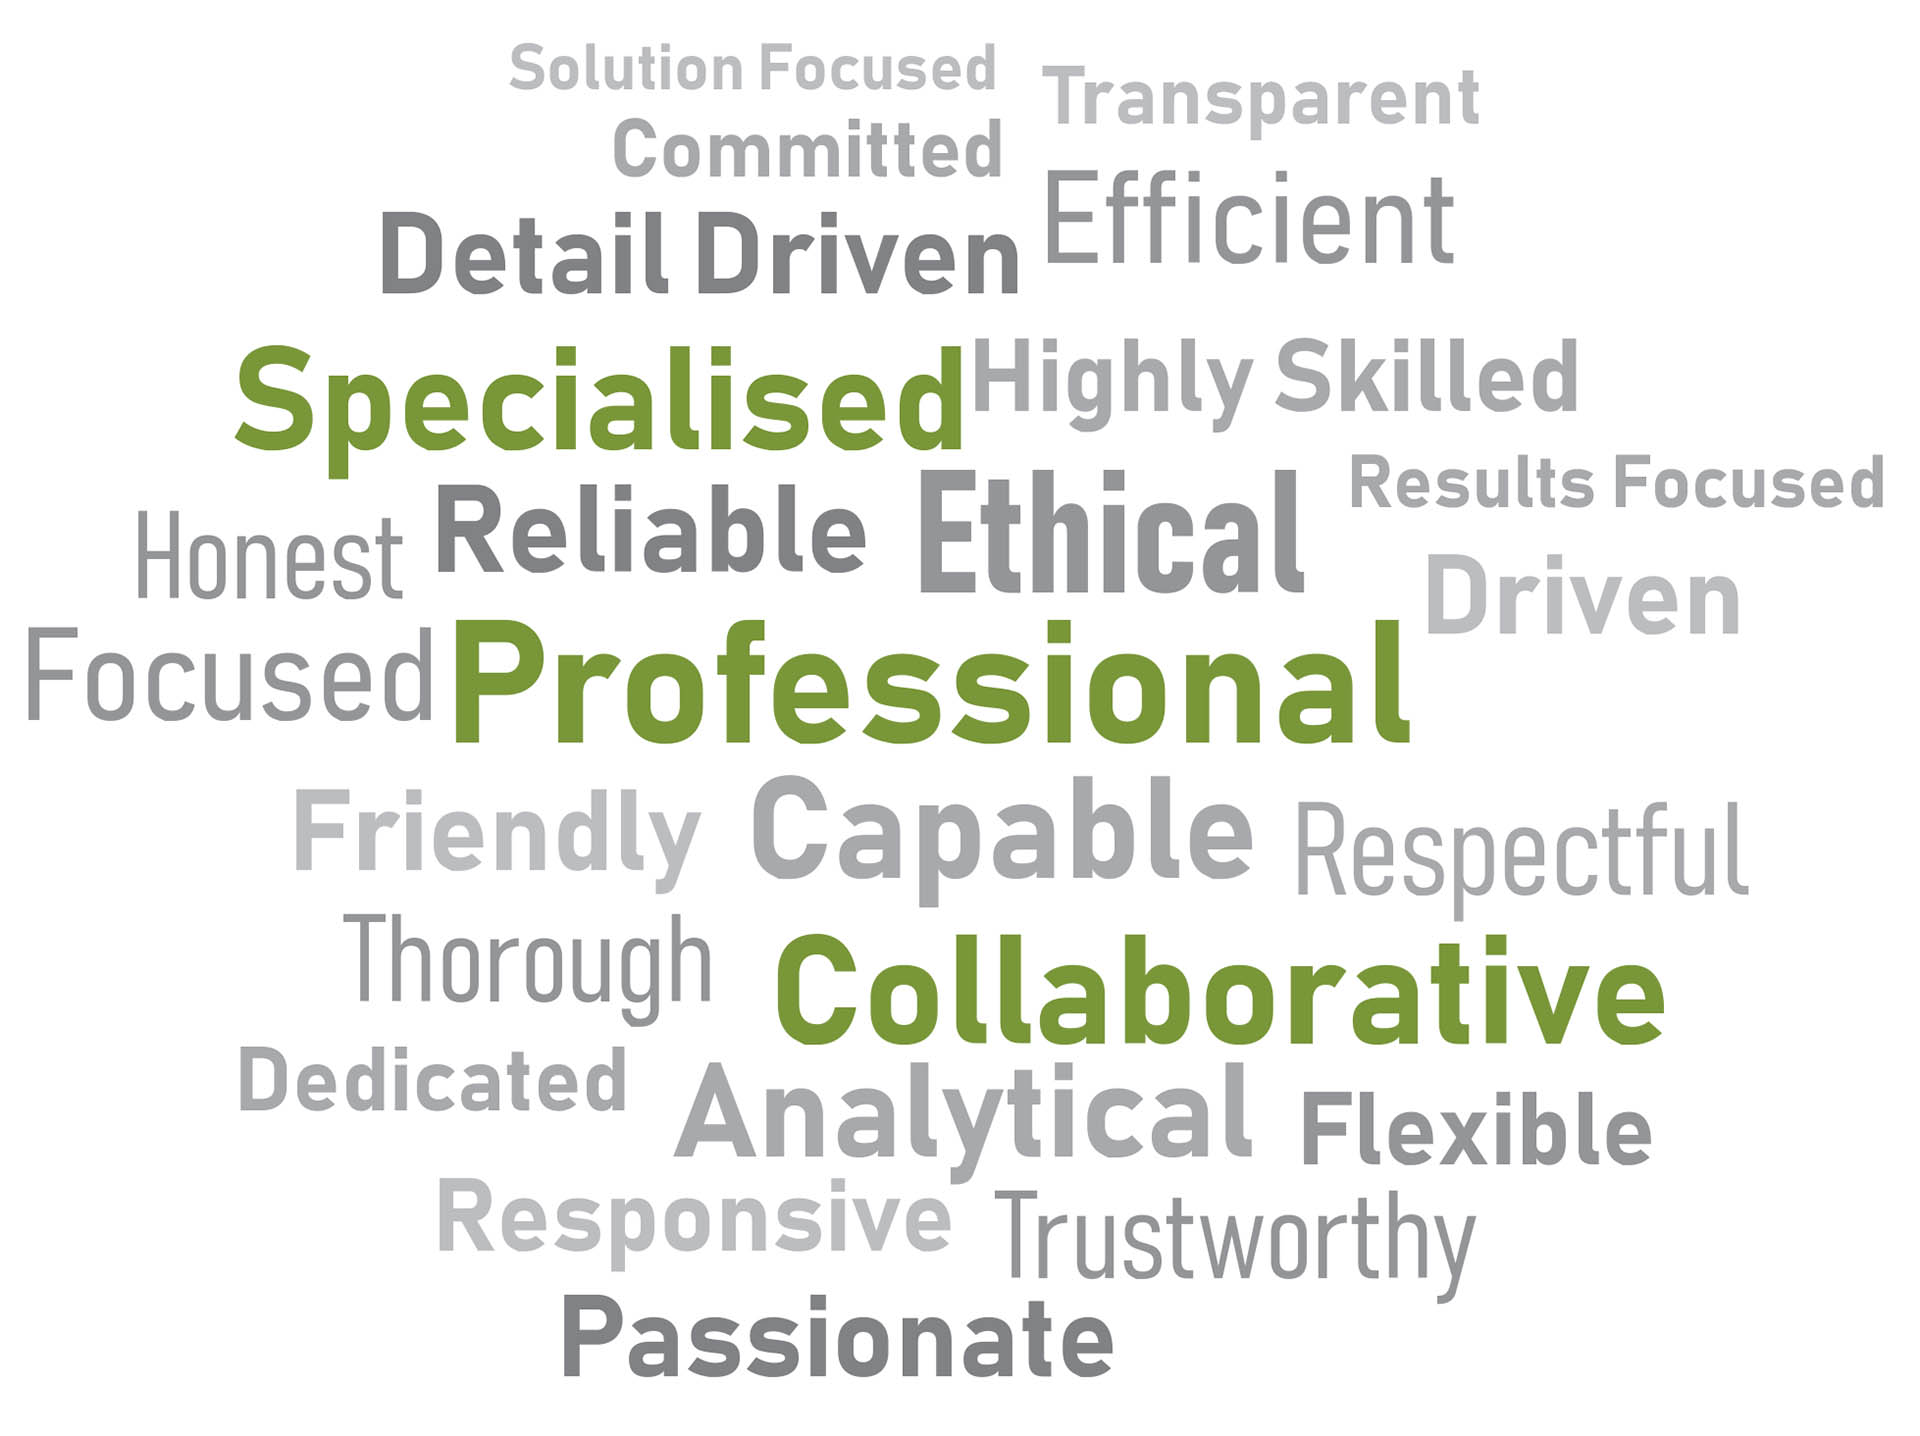 results focused carlylse-human-capital-research-committed-analytical-respectful-ethical-what-we-stand-for